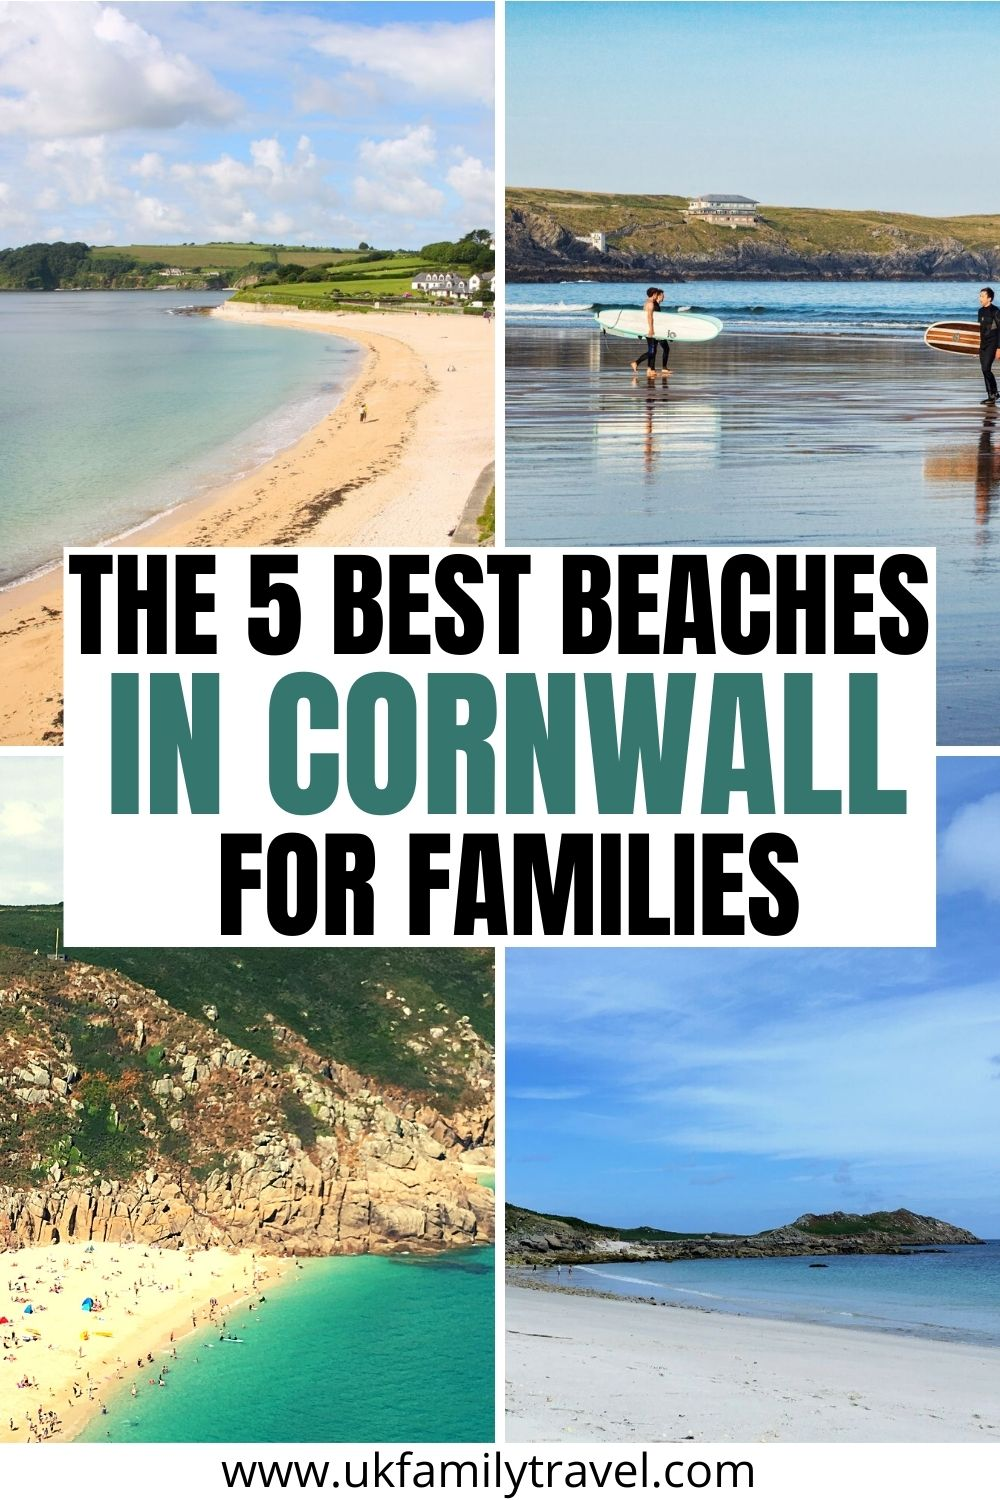 The 5 Best Beaches in Cornwall for Families